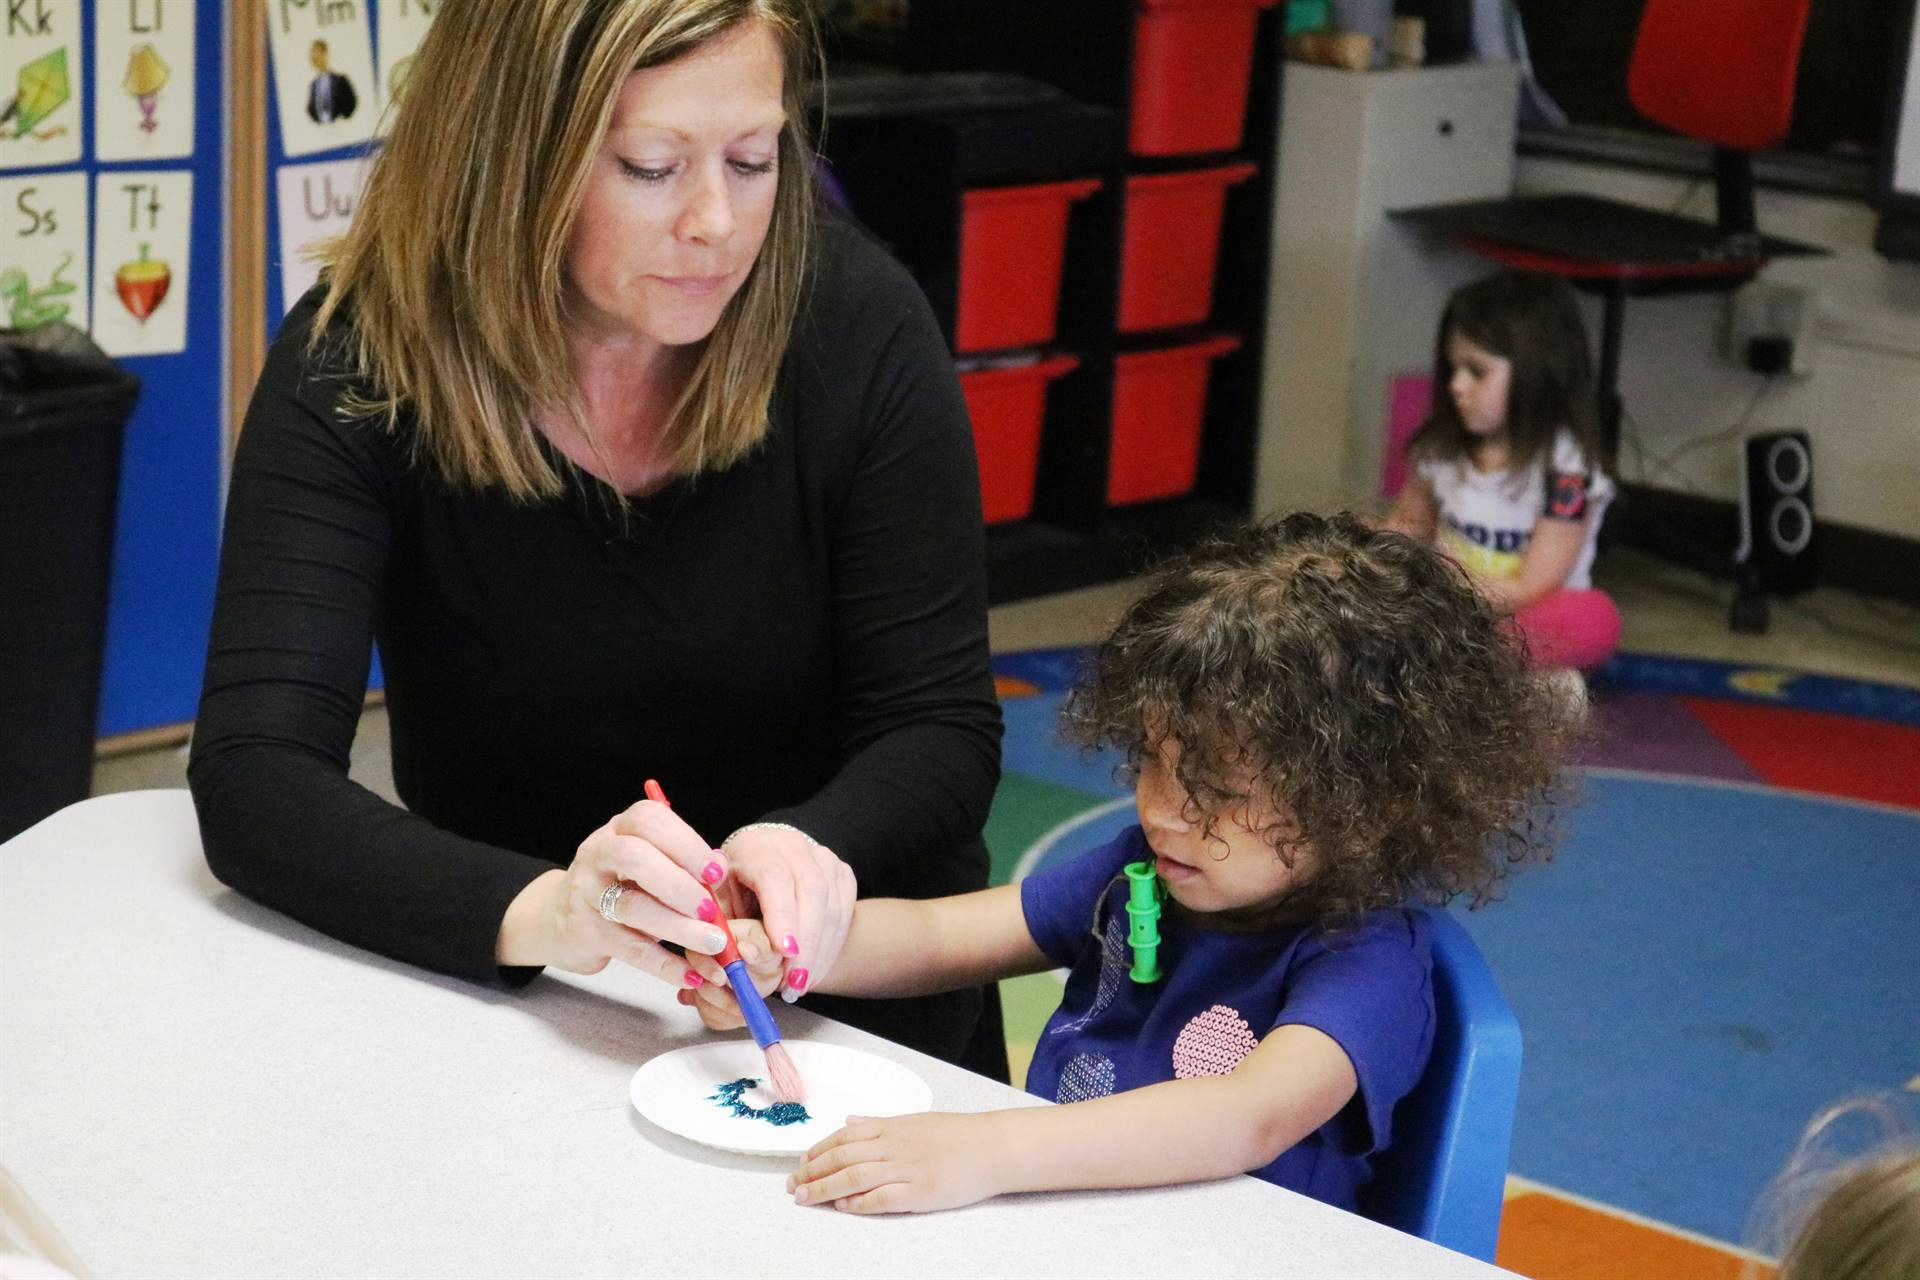 teacher lady with girl painting at table